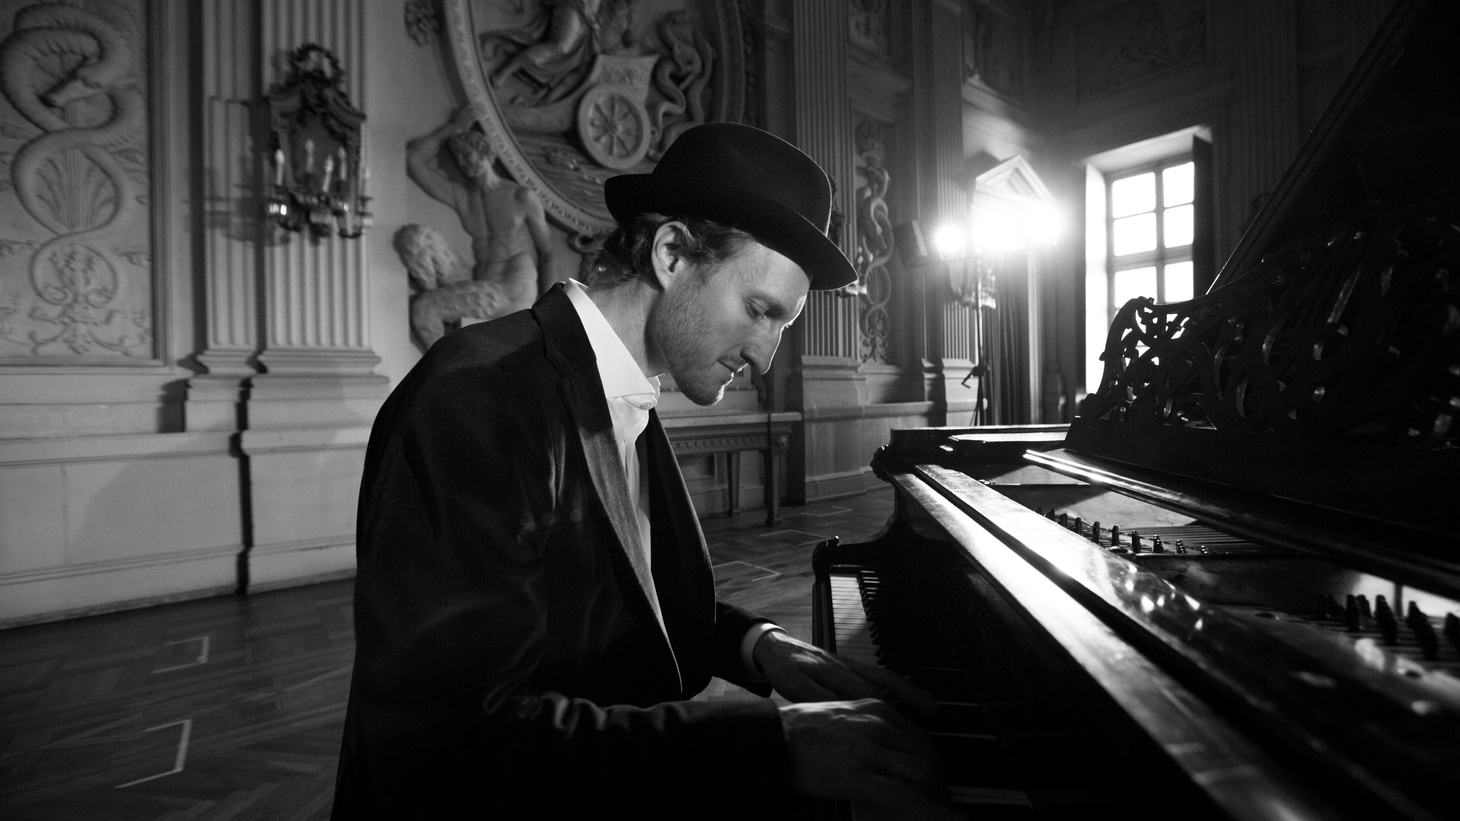 """The Lumineers' co-founder and songwriter Jeremiah Fraites makes his solo album debut featuring piano-centric instrumental compositions. Recalling the minimal aesthetic that John Cage espoused, you hear the deep calm in """"Chilly."""""""